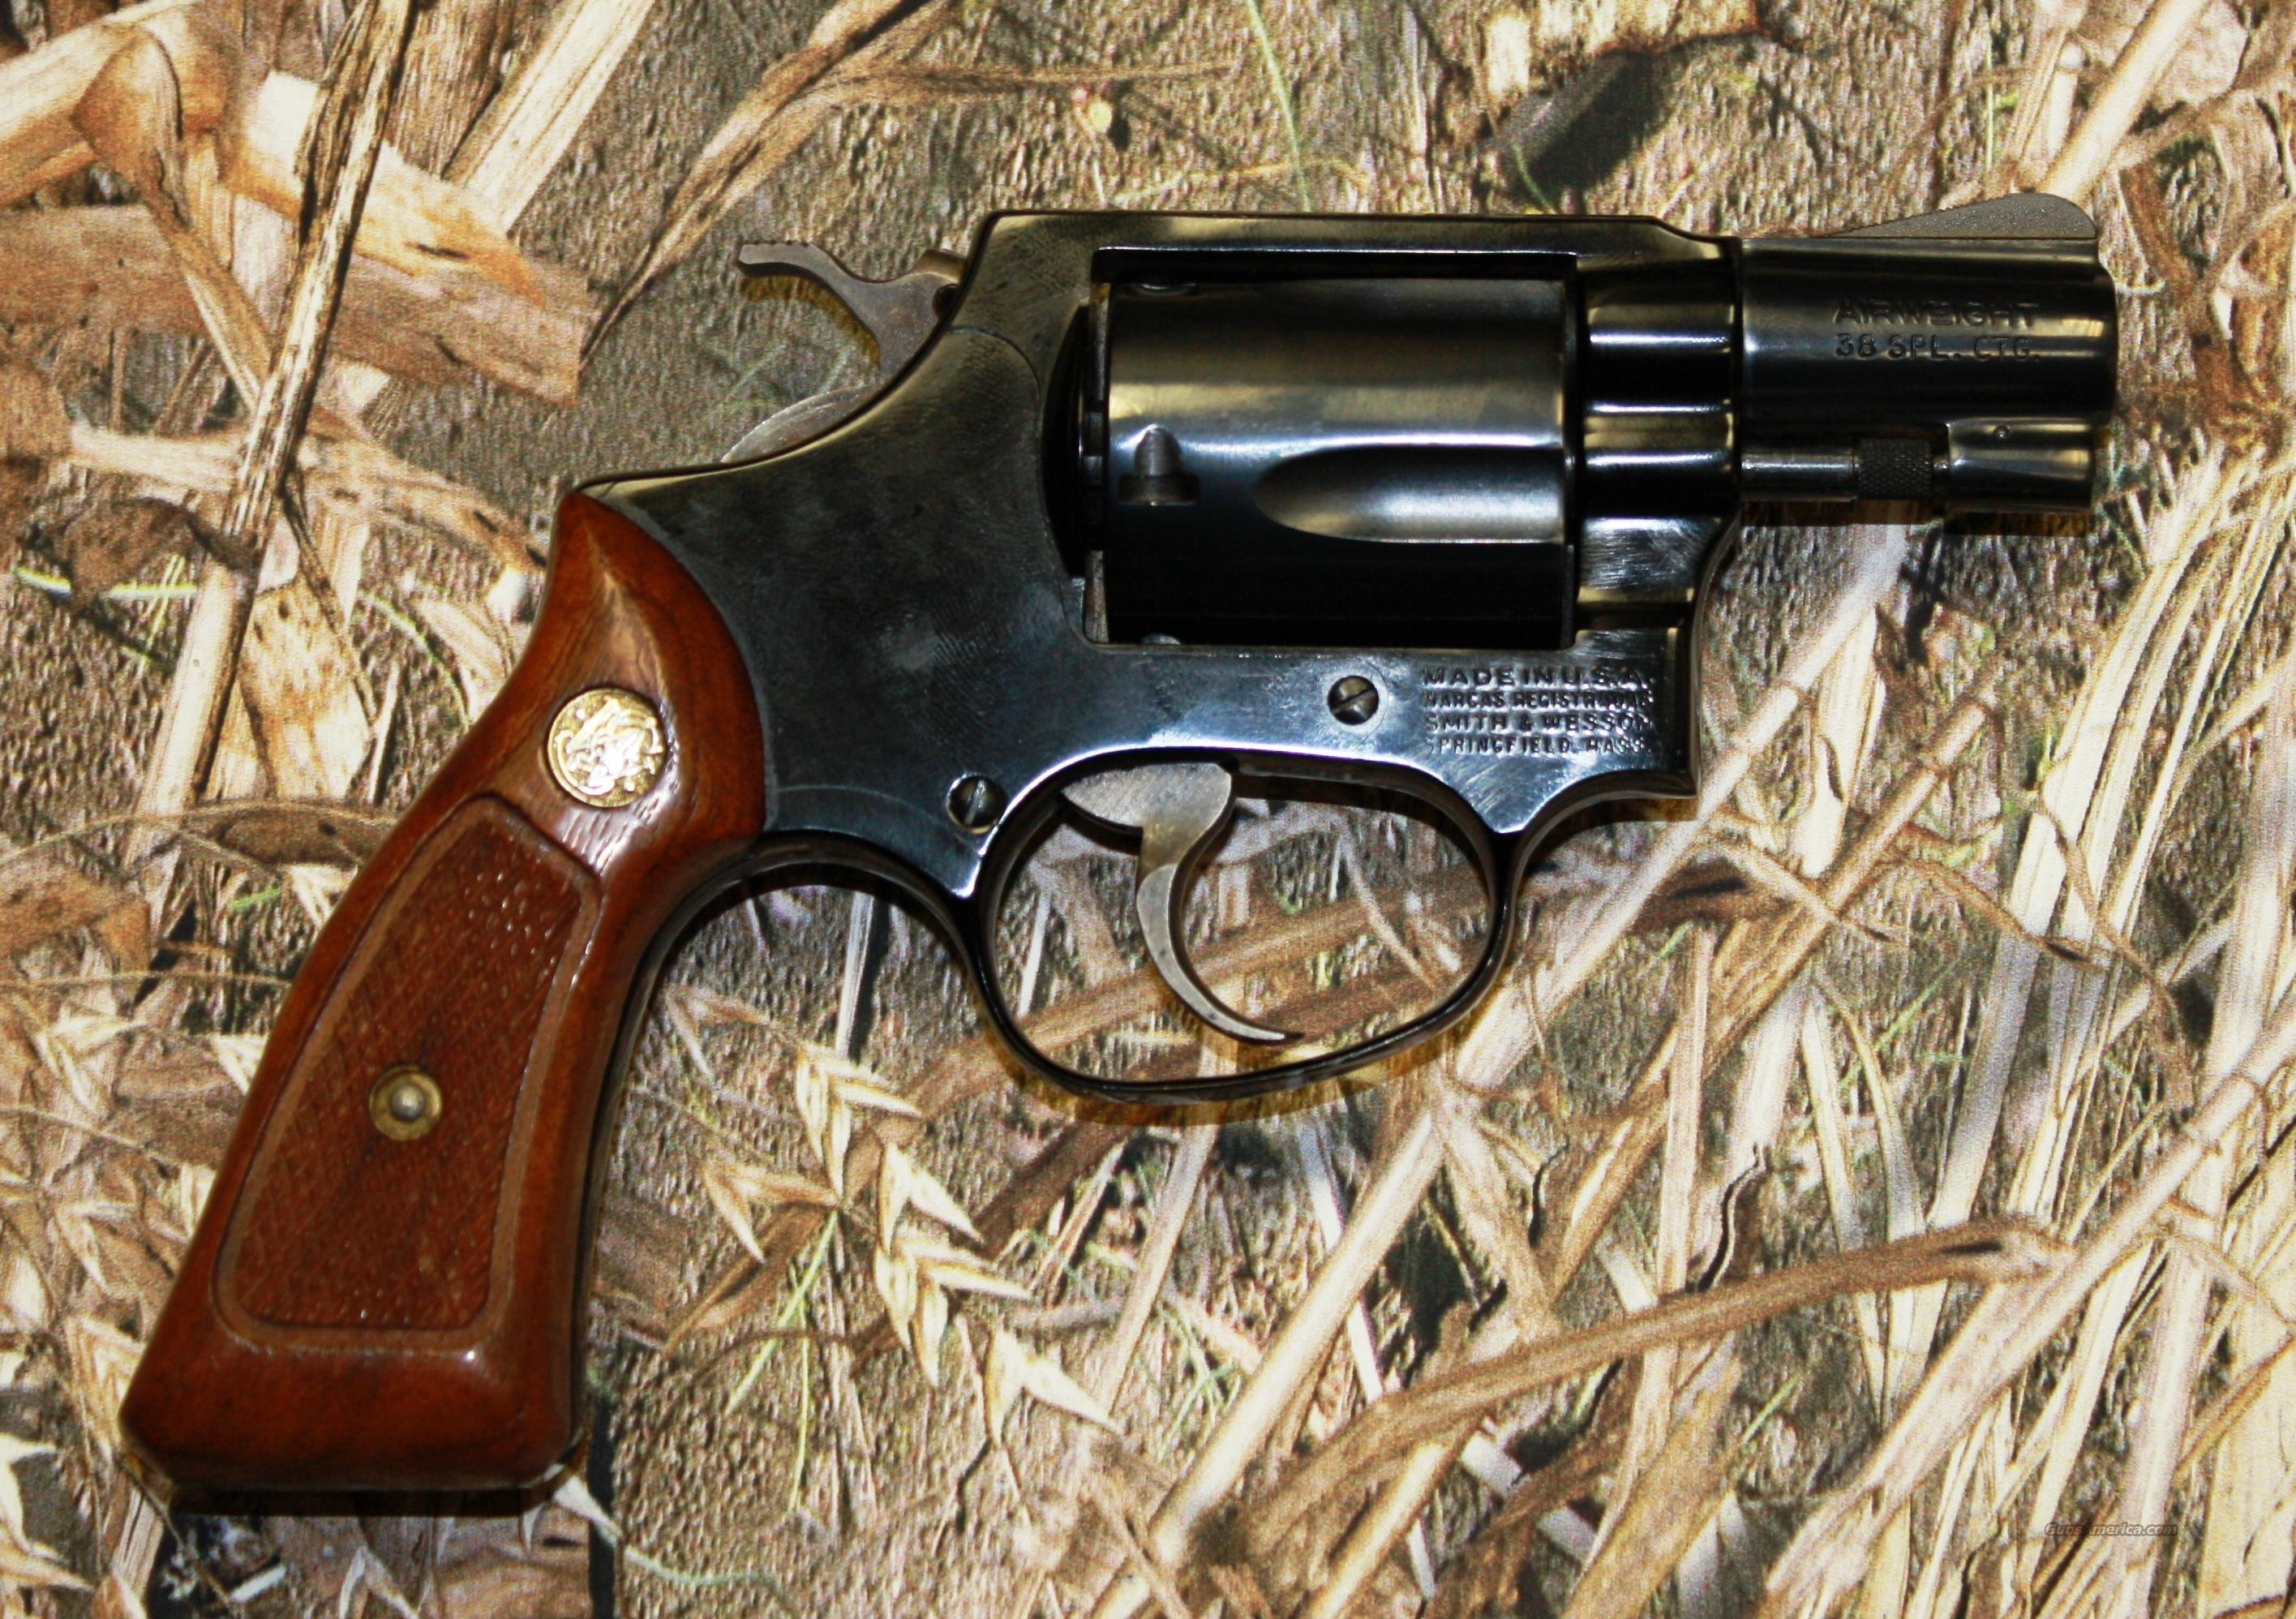 Smith & Wesson 37 Airweight  Guns > Pistols > Smith & Wesson Revolvers > Pocket Pistols